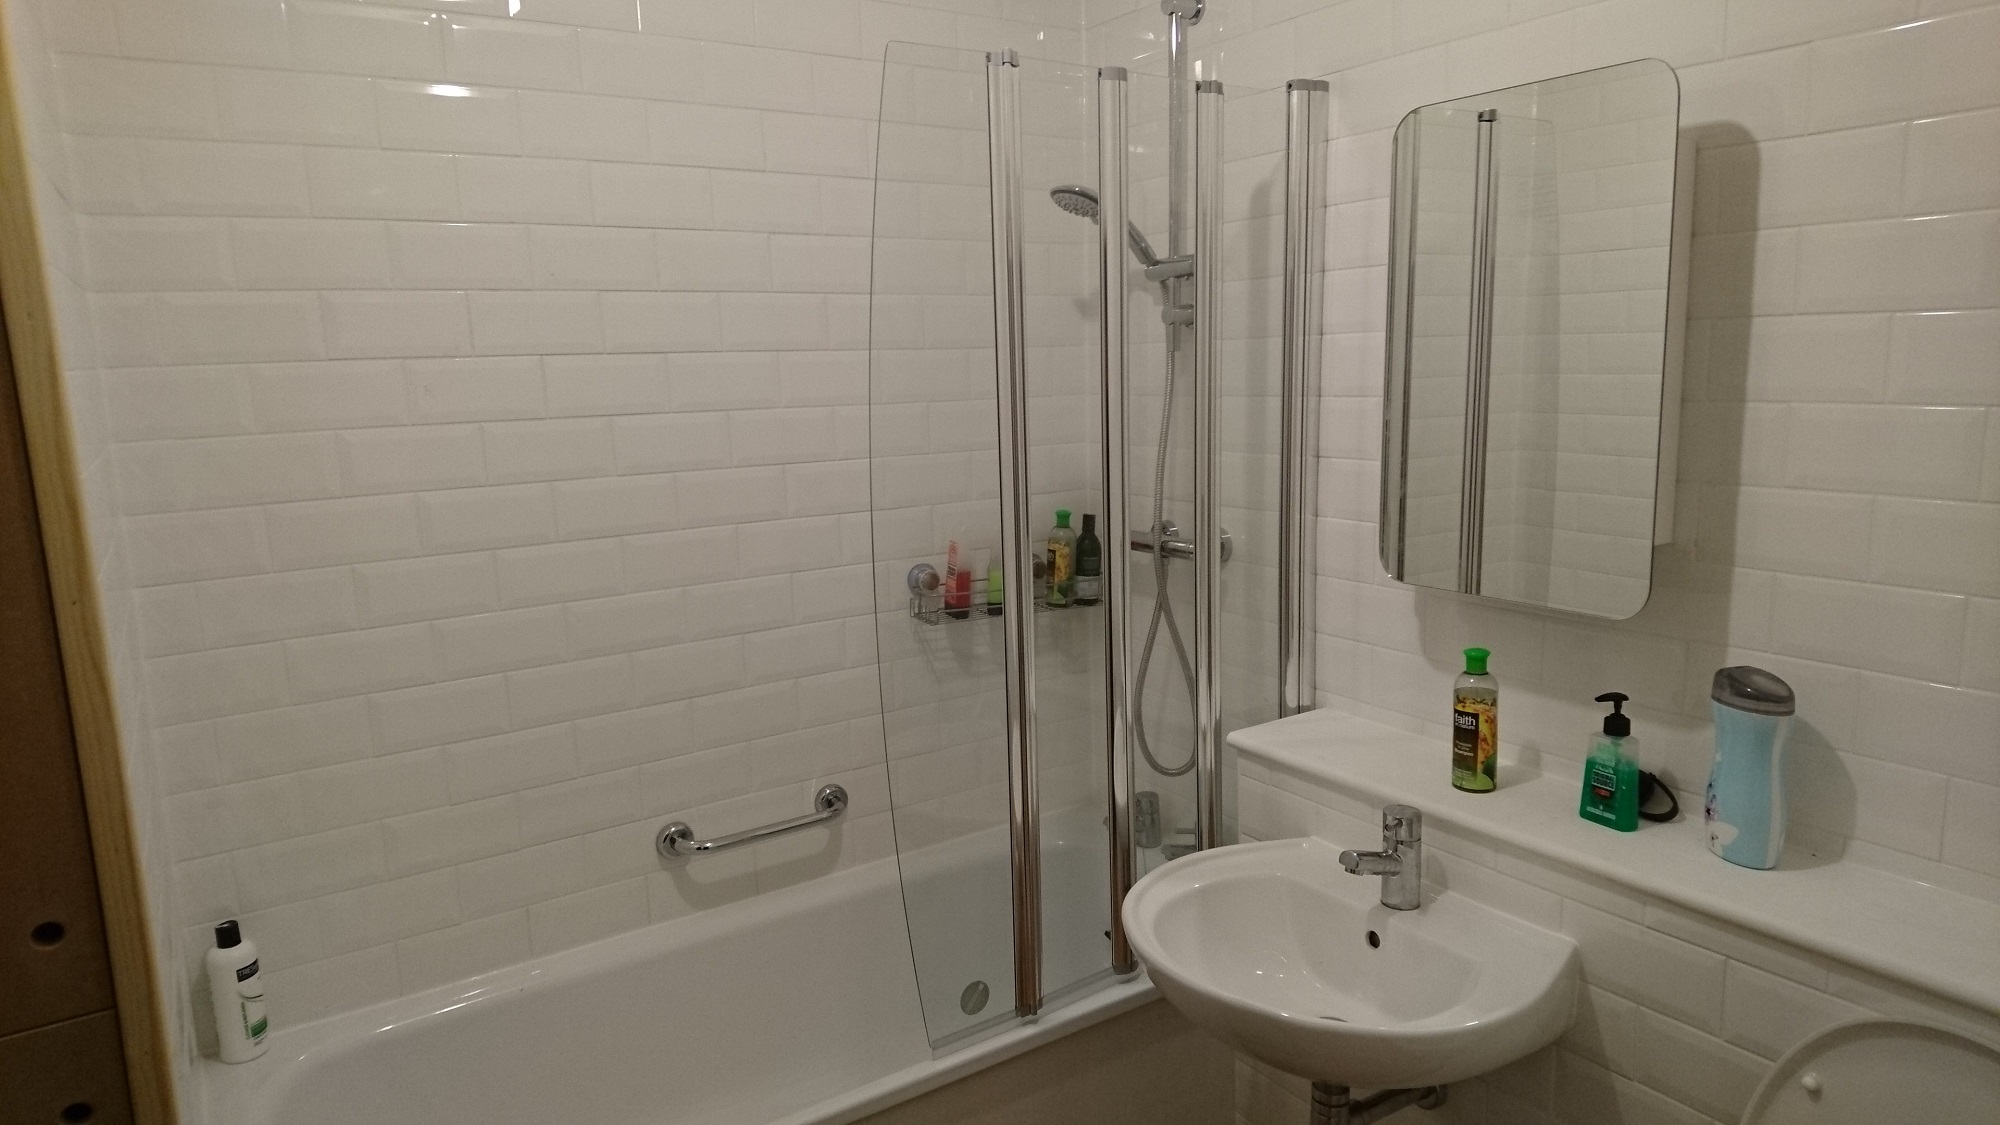 Bathroom Installation from Putney Plumbers